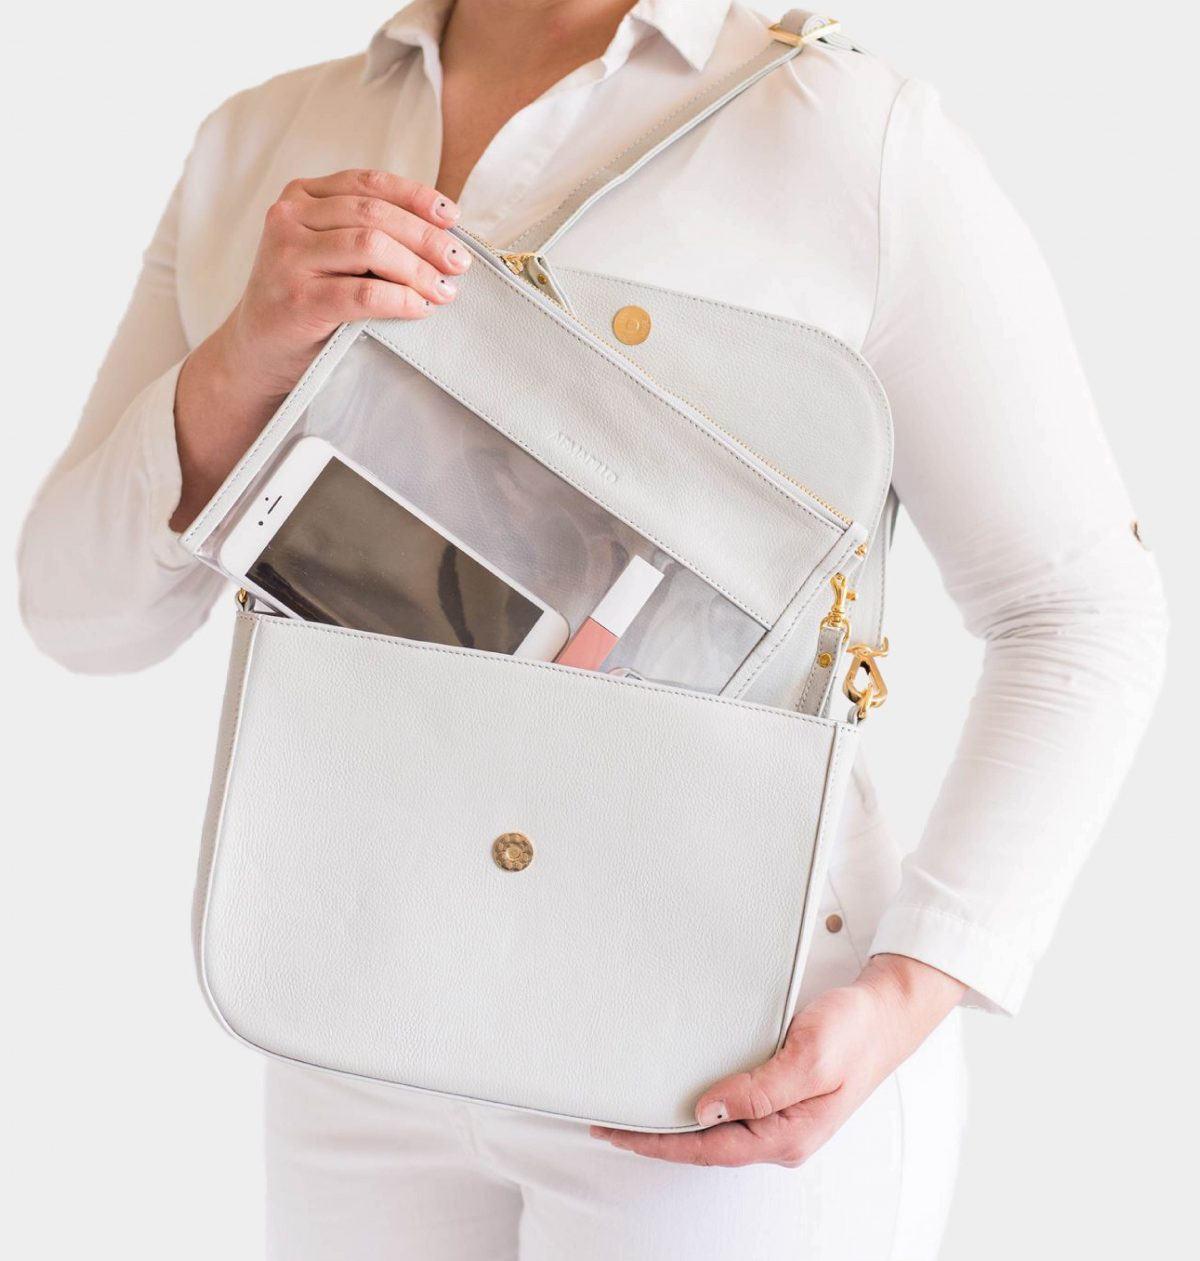 armadillo-leather-handbags-totes-wallets-clutches-backpack-small-leather-goods-accessories-office-travel-gifts-in-canada-nona-grey-light-grey-clutch-crossbody-clear-clutch-set